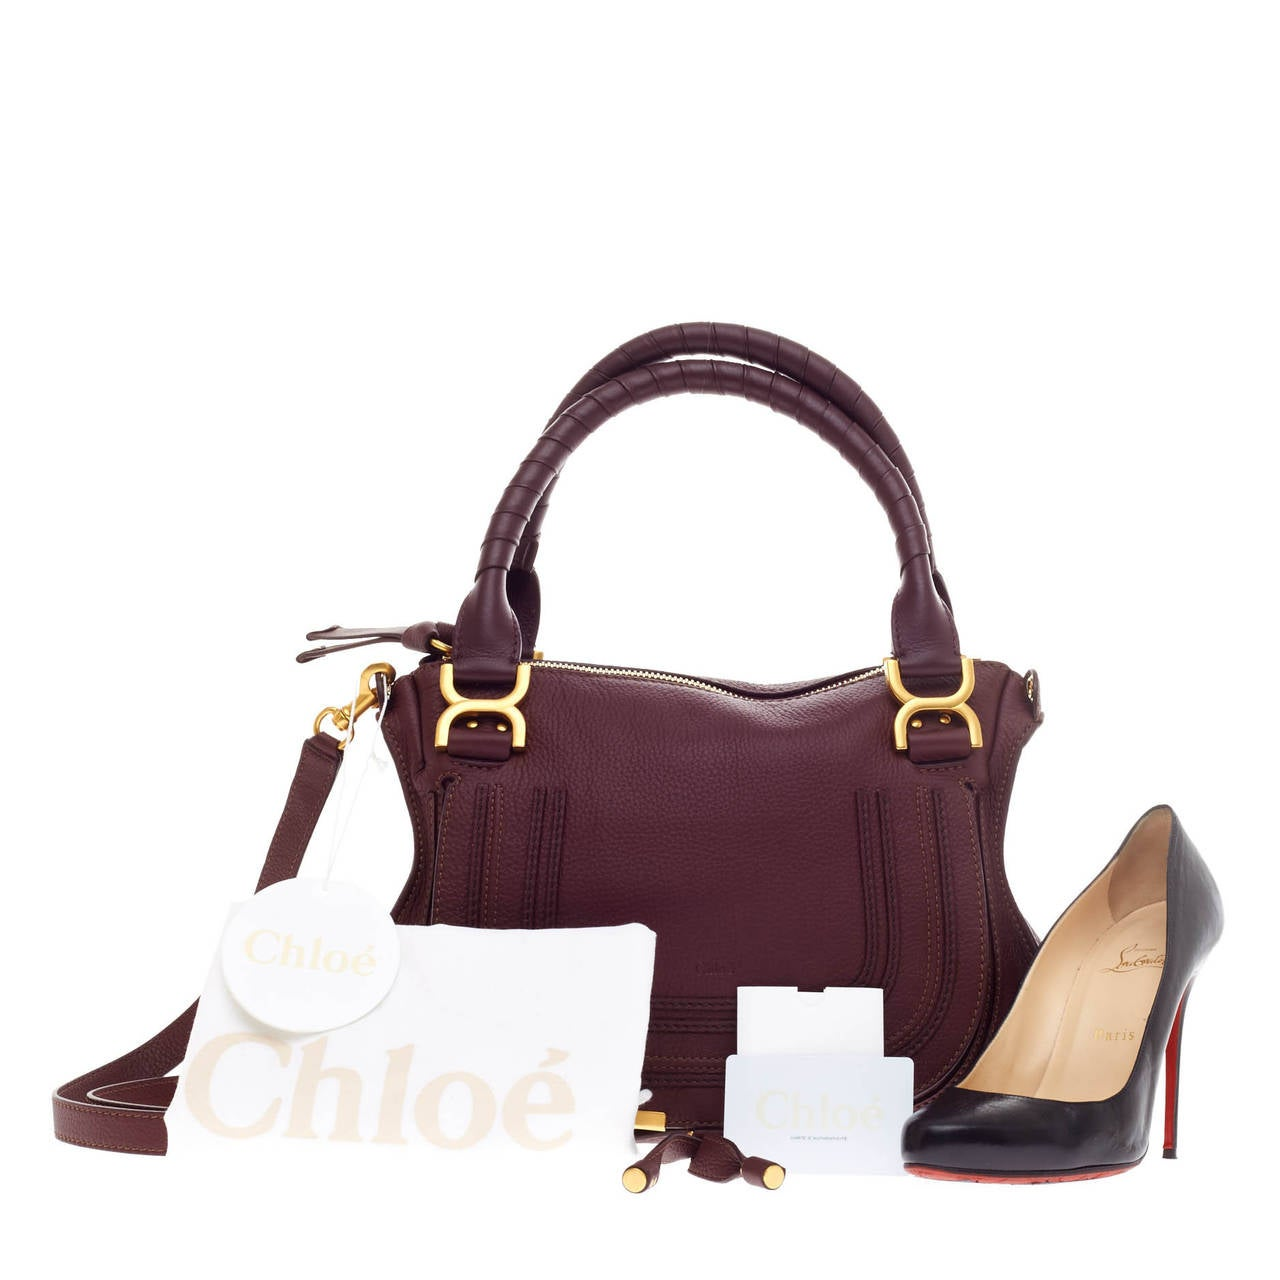 replica chloe marcie - Chloe Marcie Top Handle Bag with Strap Leather Medium at 1stdibs